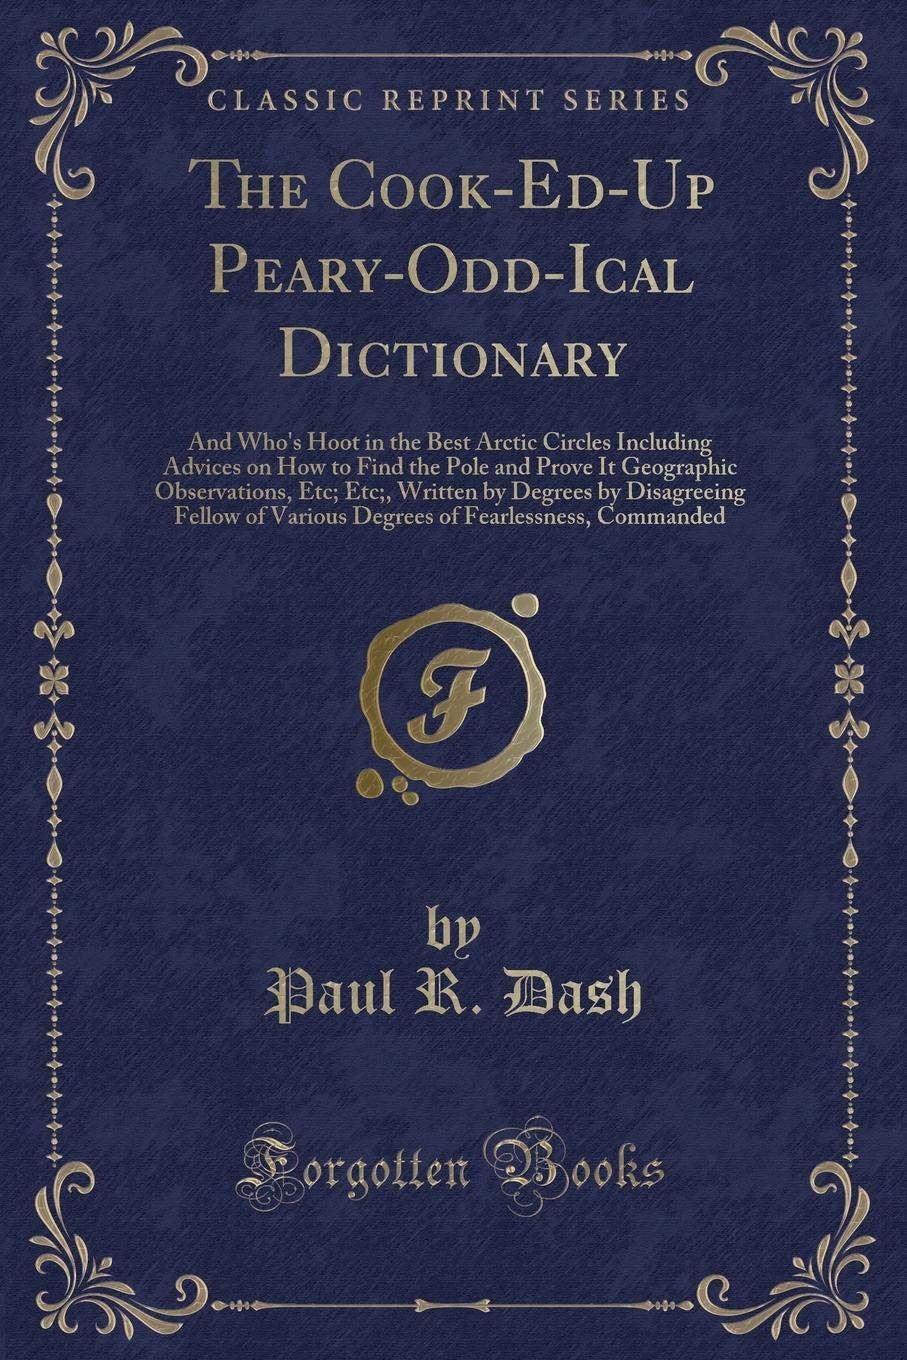 Download The Cook-Ed-Up Peary-Odd-Ical Dictionary: And Who's Hoot in the Best Arctic Circles Including Advices on How to Find the Pole and Prove It Geographic ... of Various Degrees of Fearlessness, Com PDF